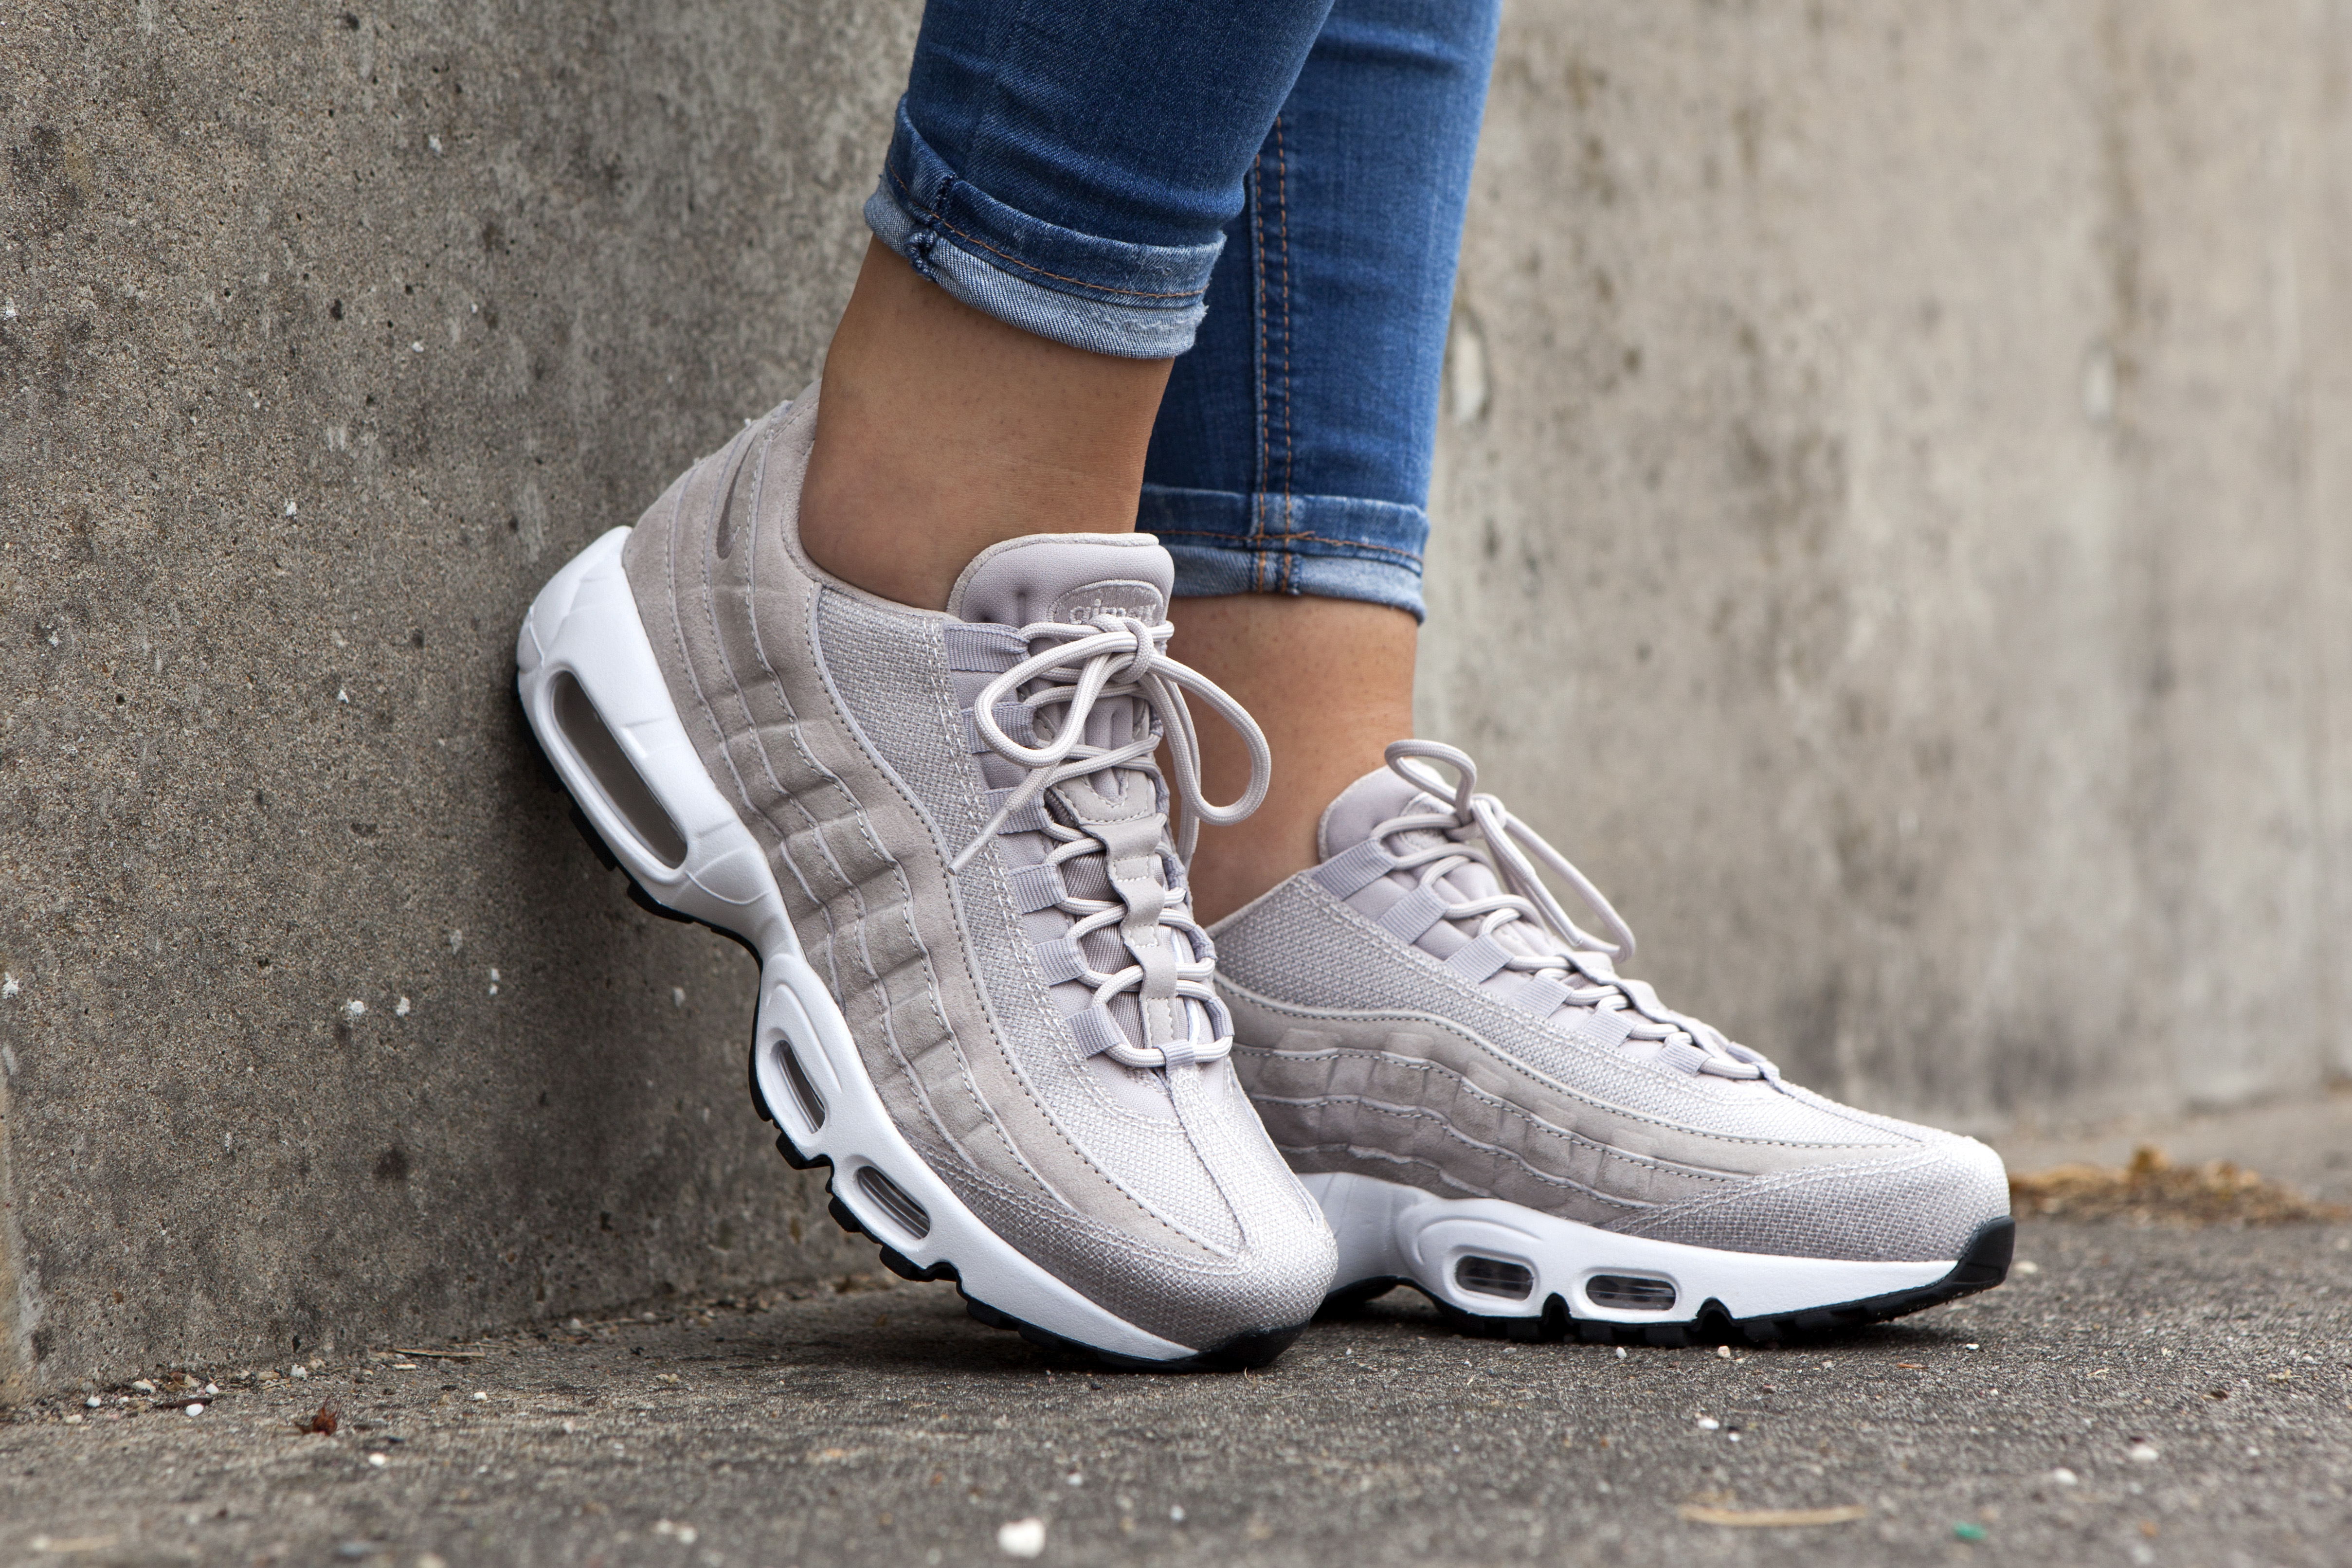 detailed look d9702 58e4c Nike Air Max 95 sneakers - De trend van 2018 - SNEAKERS.nl